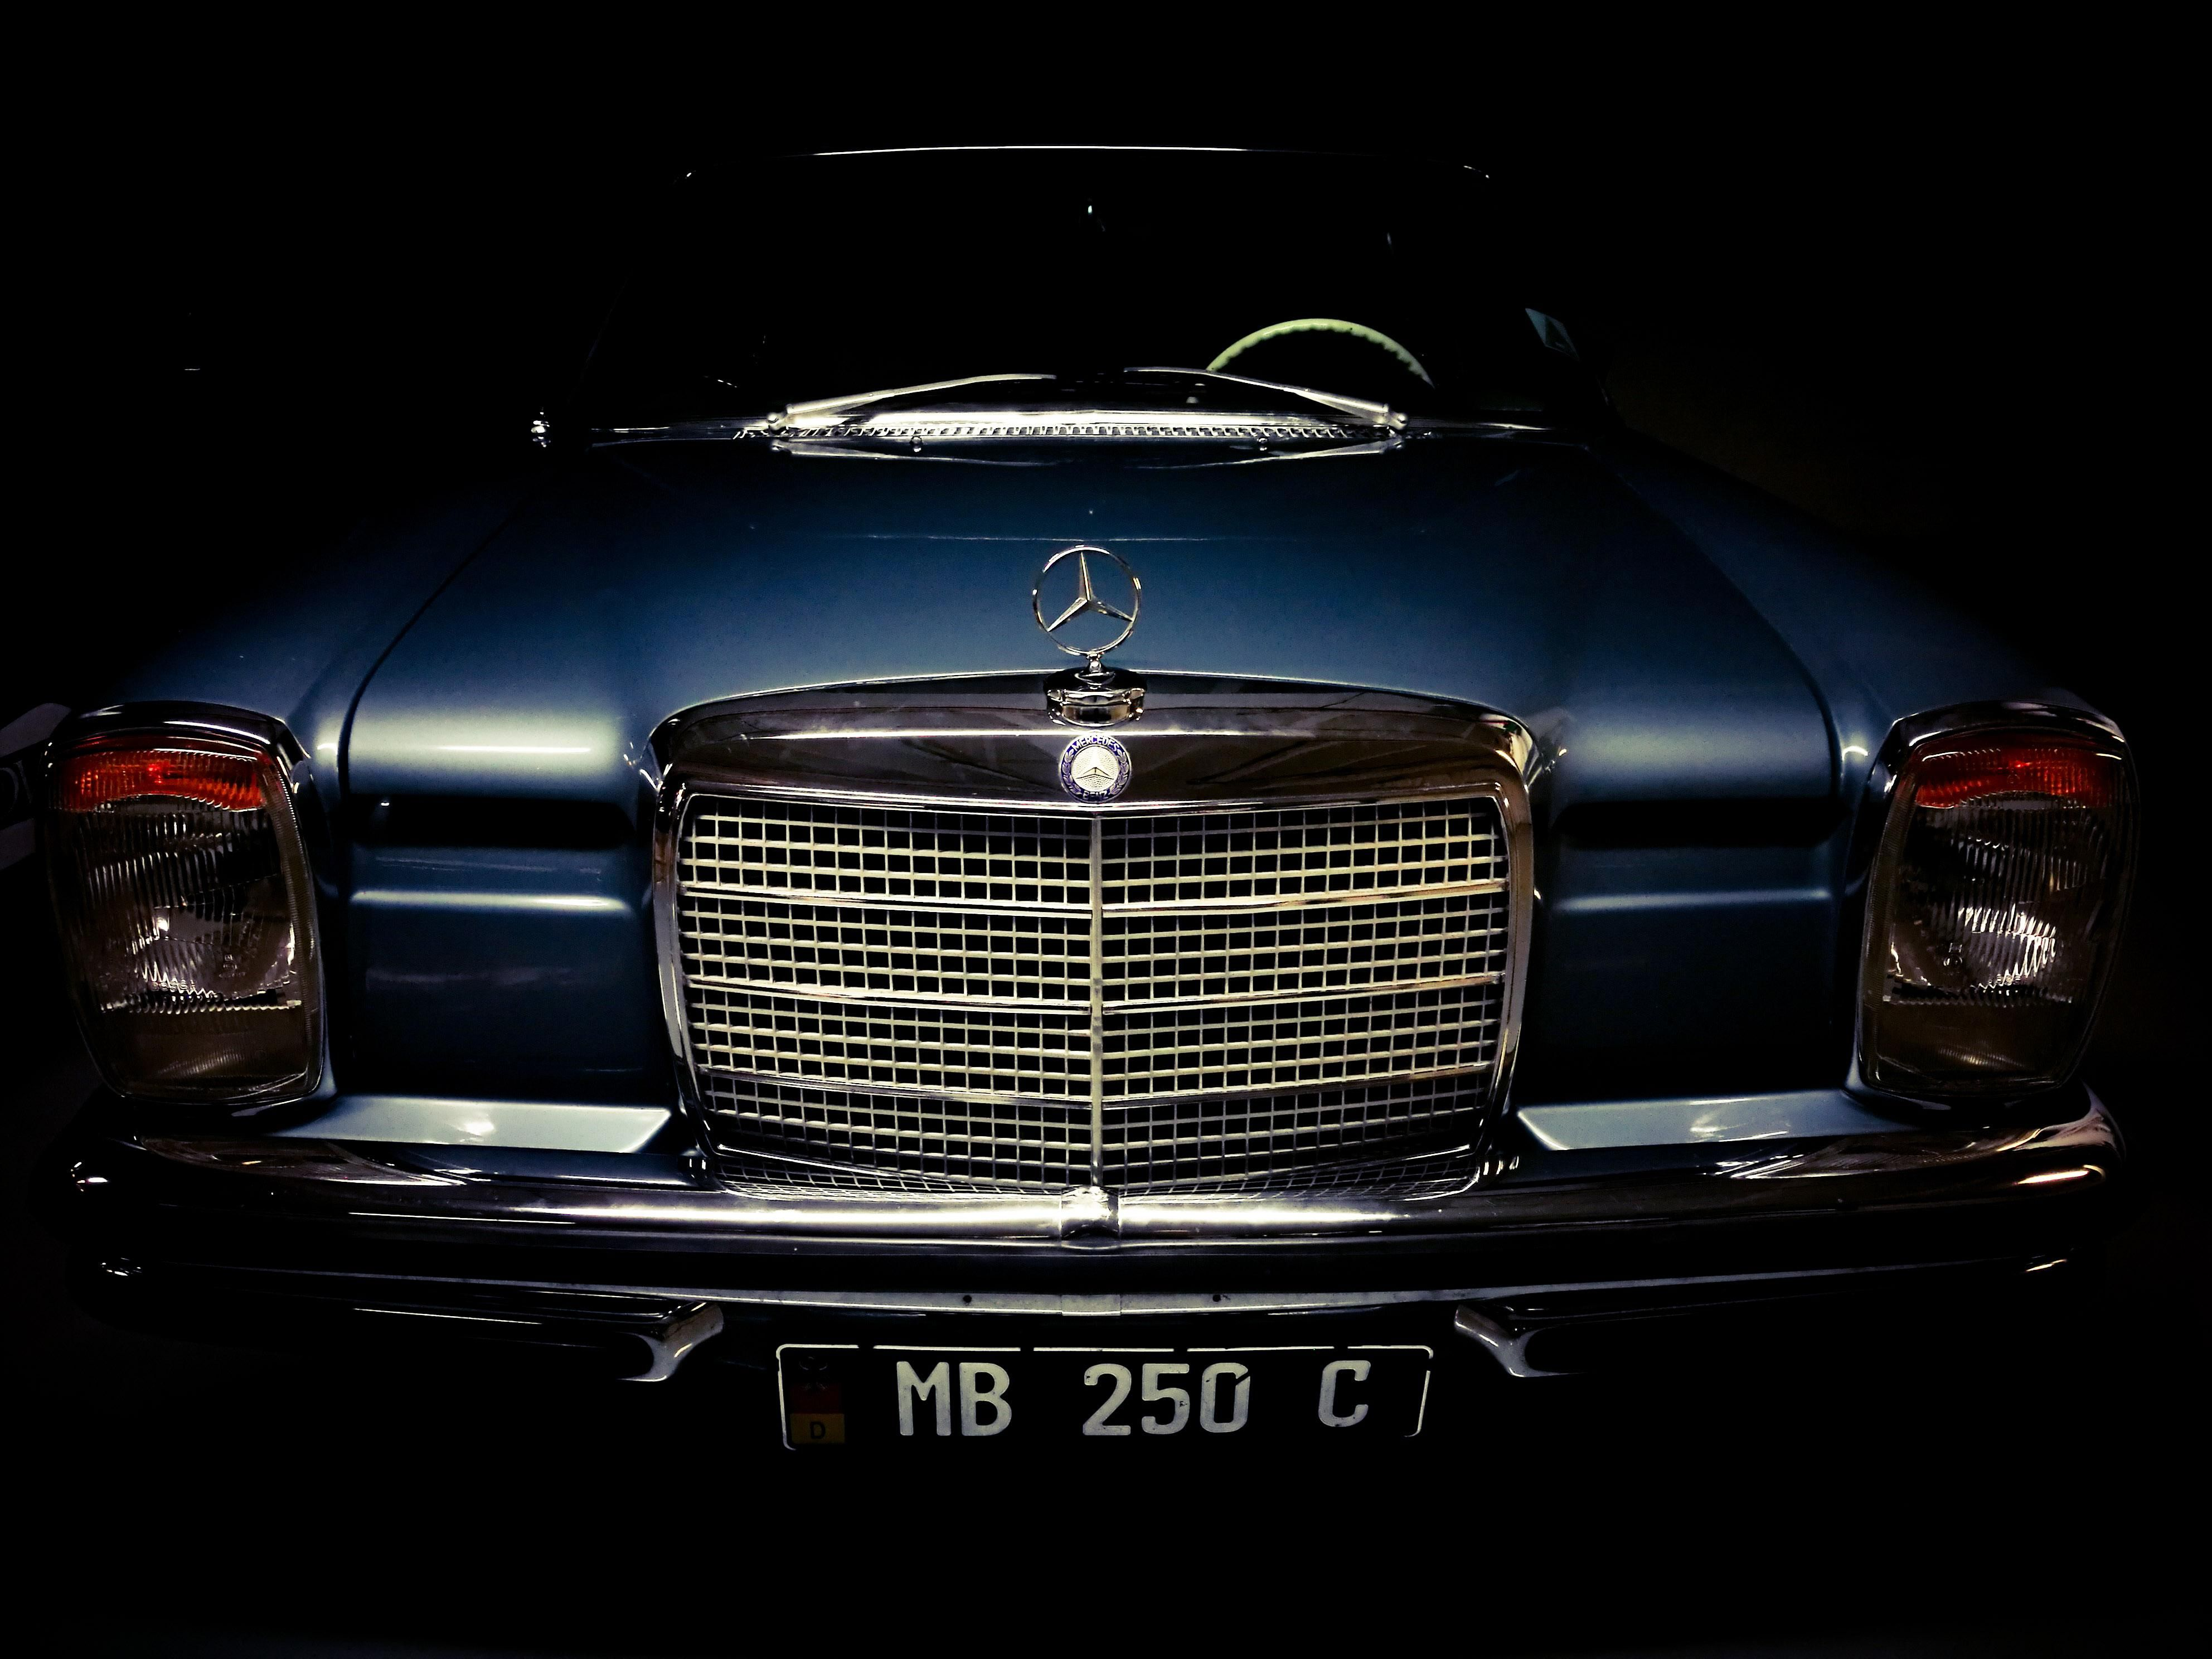 What are your thoughts on in this picture I took of an old Mercedes